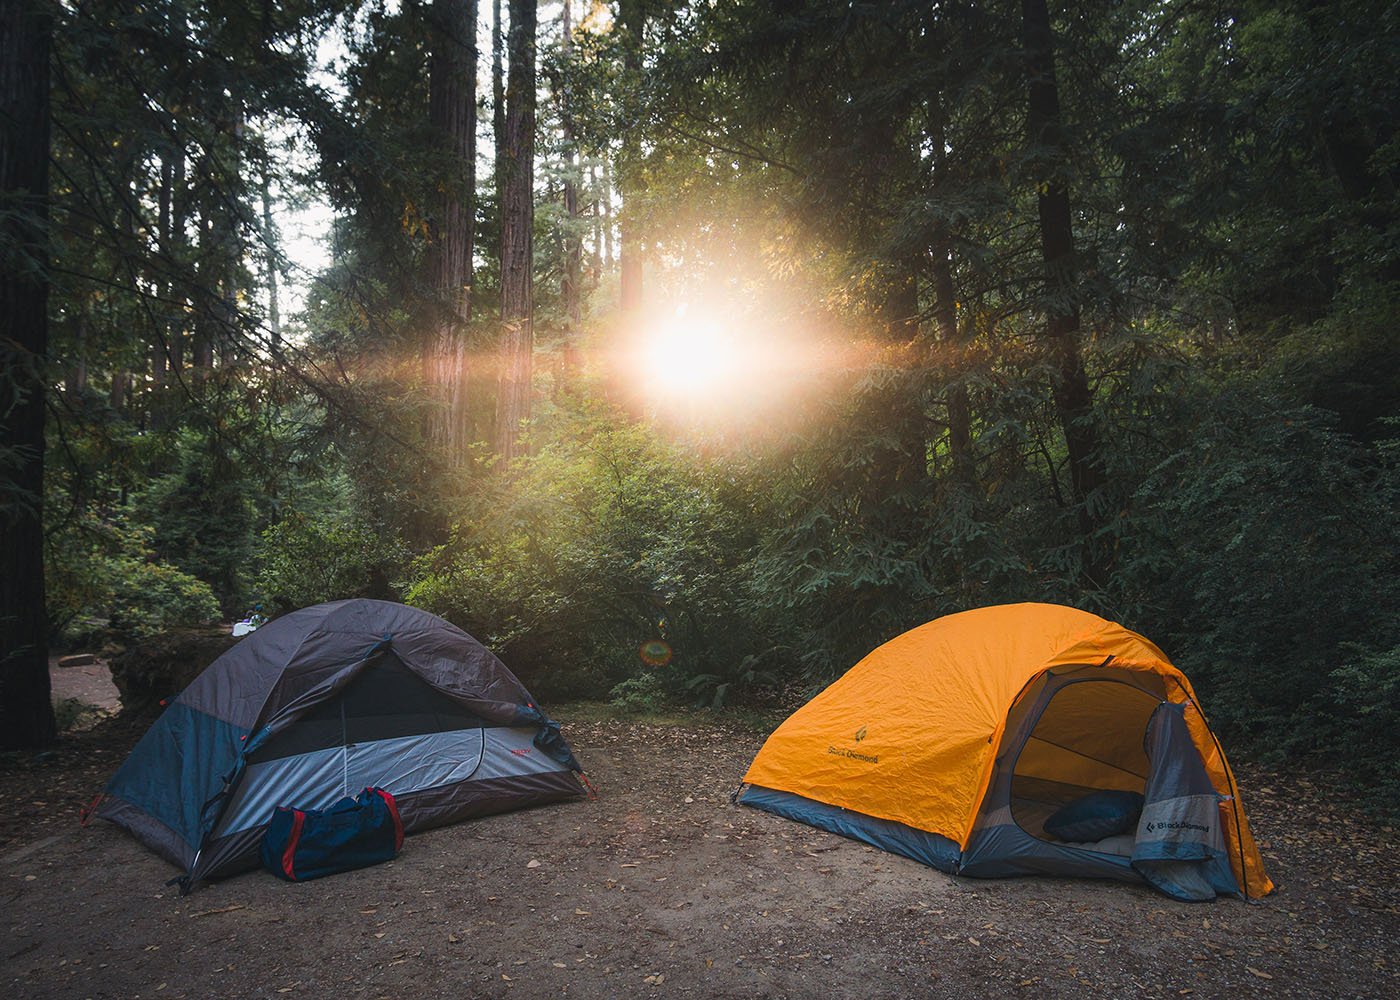 Getting Outdoors This Summer? Here Are 12 Things to Purchase Before Your Summer Camping Trip Thumbnail